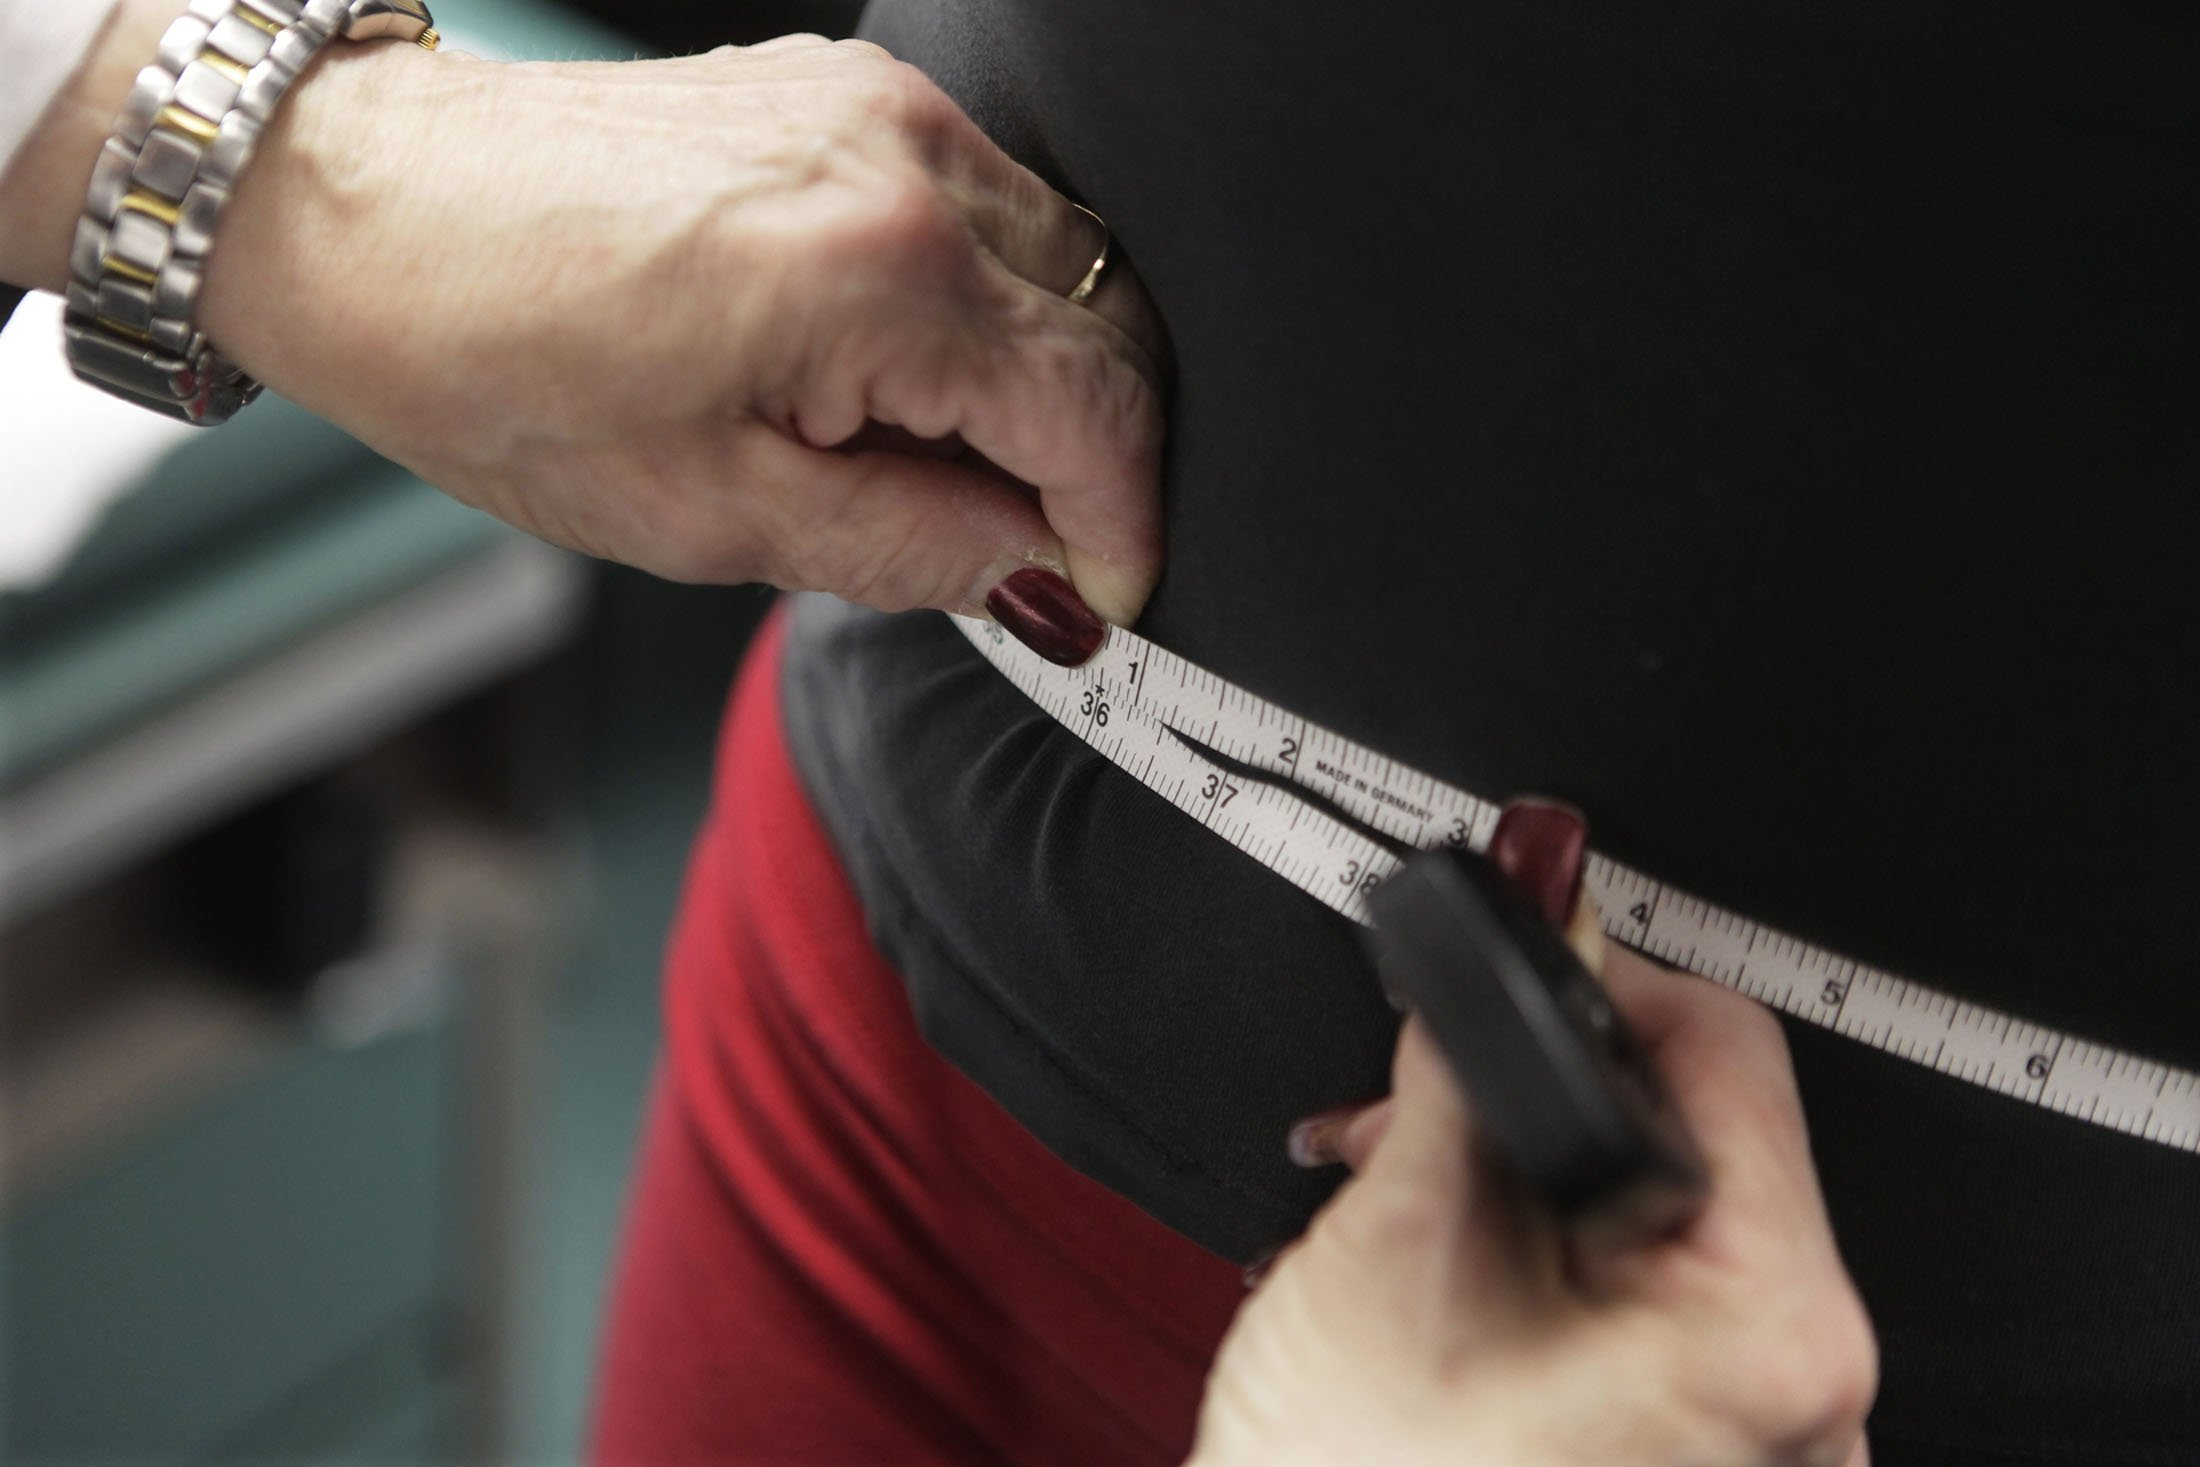 A waist is measured during an obesity prevention study in Chicago, Illinois, U.S., Jan. 20, 2010. (AP File Photo)